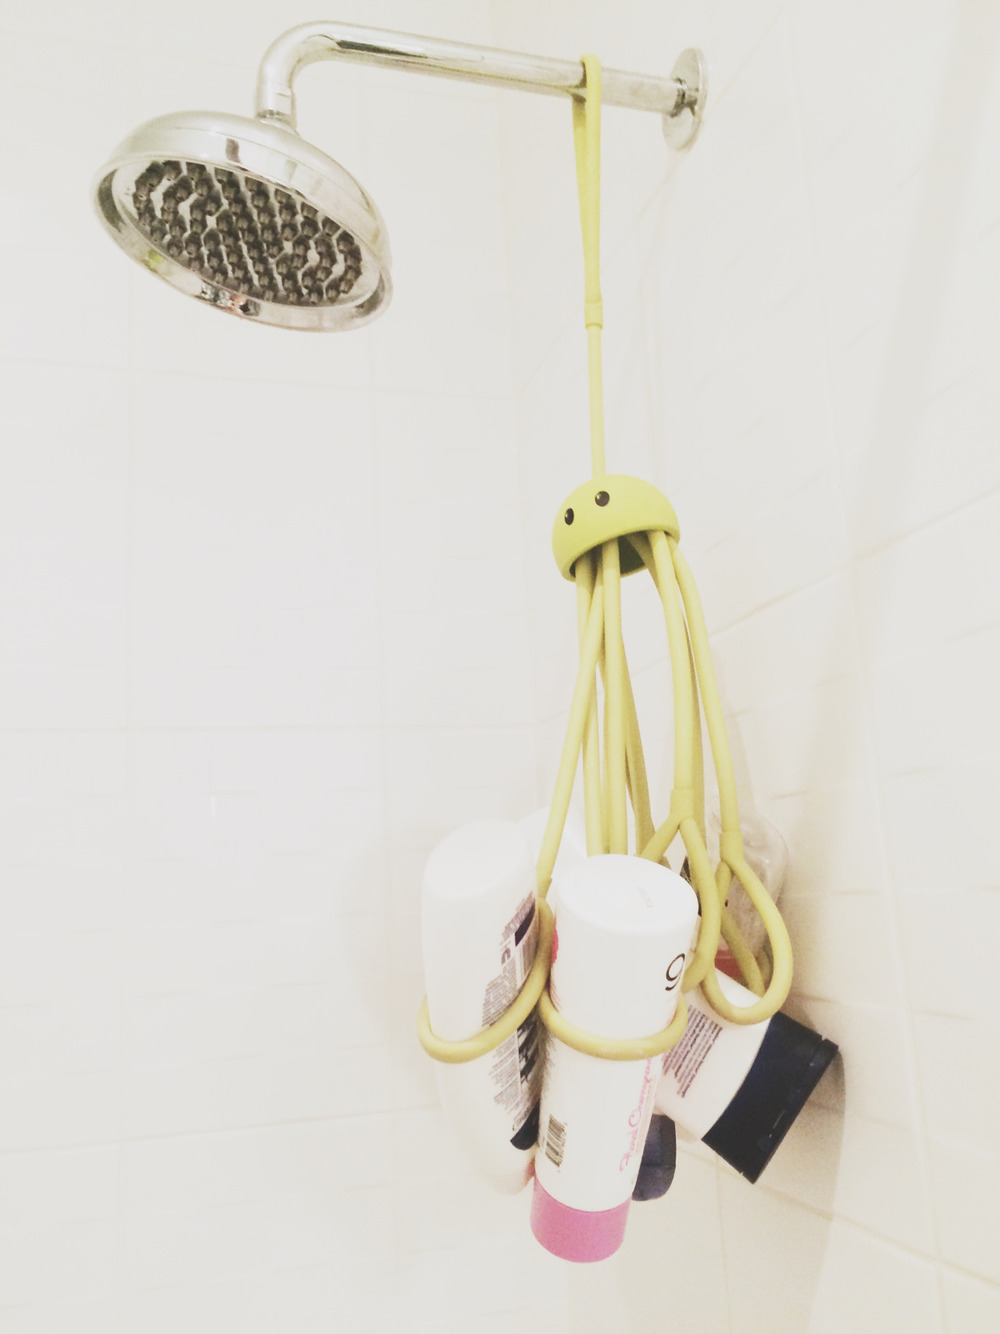 THE LITTLE THINGS   Have I mentioned that we live in a small space ;) ?  Well in a small space when every inch counts, the tiniest detail can make a big difference.  I picked up this octopus shower caddy (link  here ) at the  Dwell  design show on a whim a few years back and this playful addition has come in even more handy lately.  It keeps most of our bath products off the ledges which is helpful in keeping the ledges clear of clutter and leaves the shower/tub easy to clean.  The octopus also keeps bottles off the ledges which tend to be too tempting for a chubby fingers that love the crashing sound they make when they fall in the tub.   Clutter free surfaces in any home are a welcome site but in a small space they are a necessity and anything that easily accomplishes this feat like this Octupus shower caddy is a big win.  Now if only something some this simple could tackle the clutter on our entry bench…